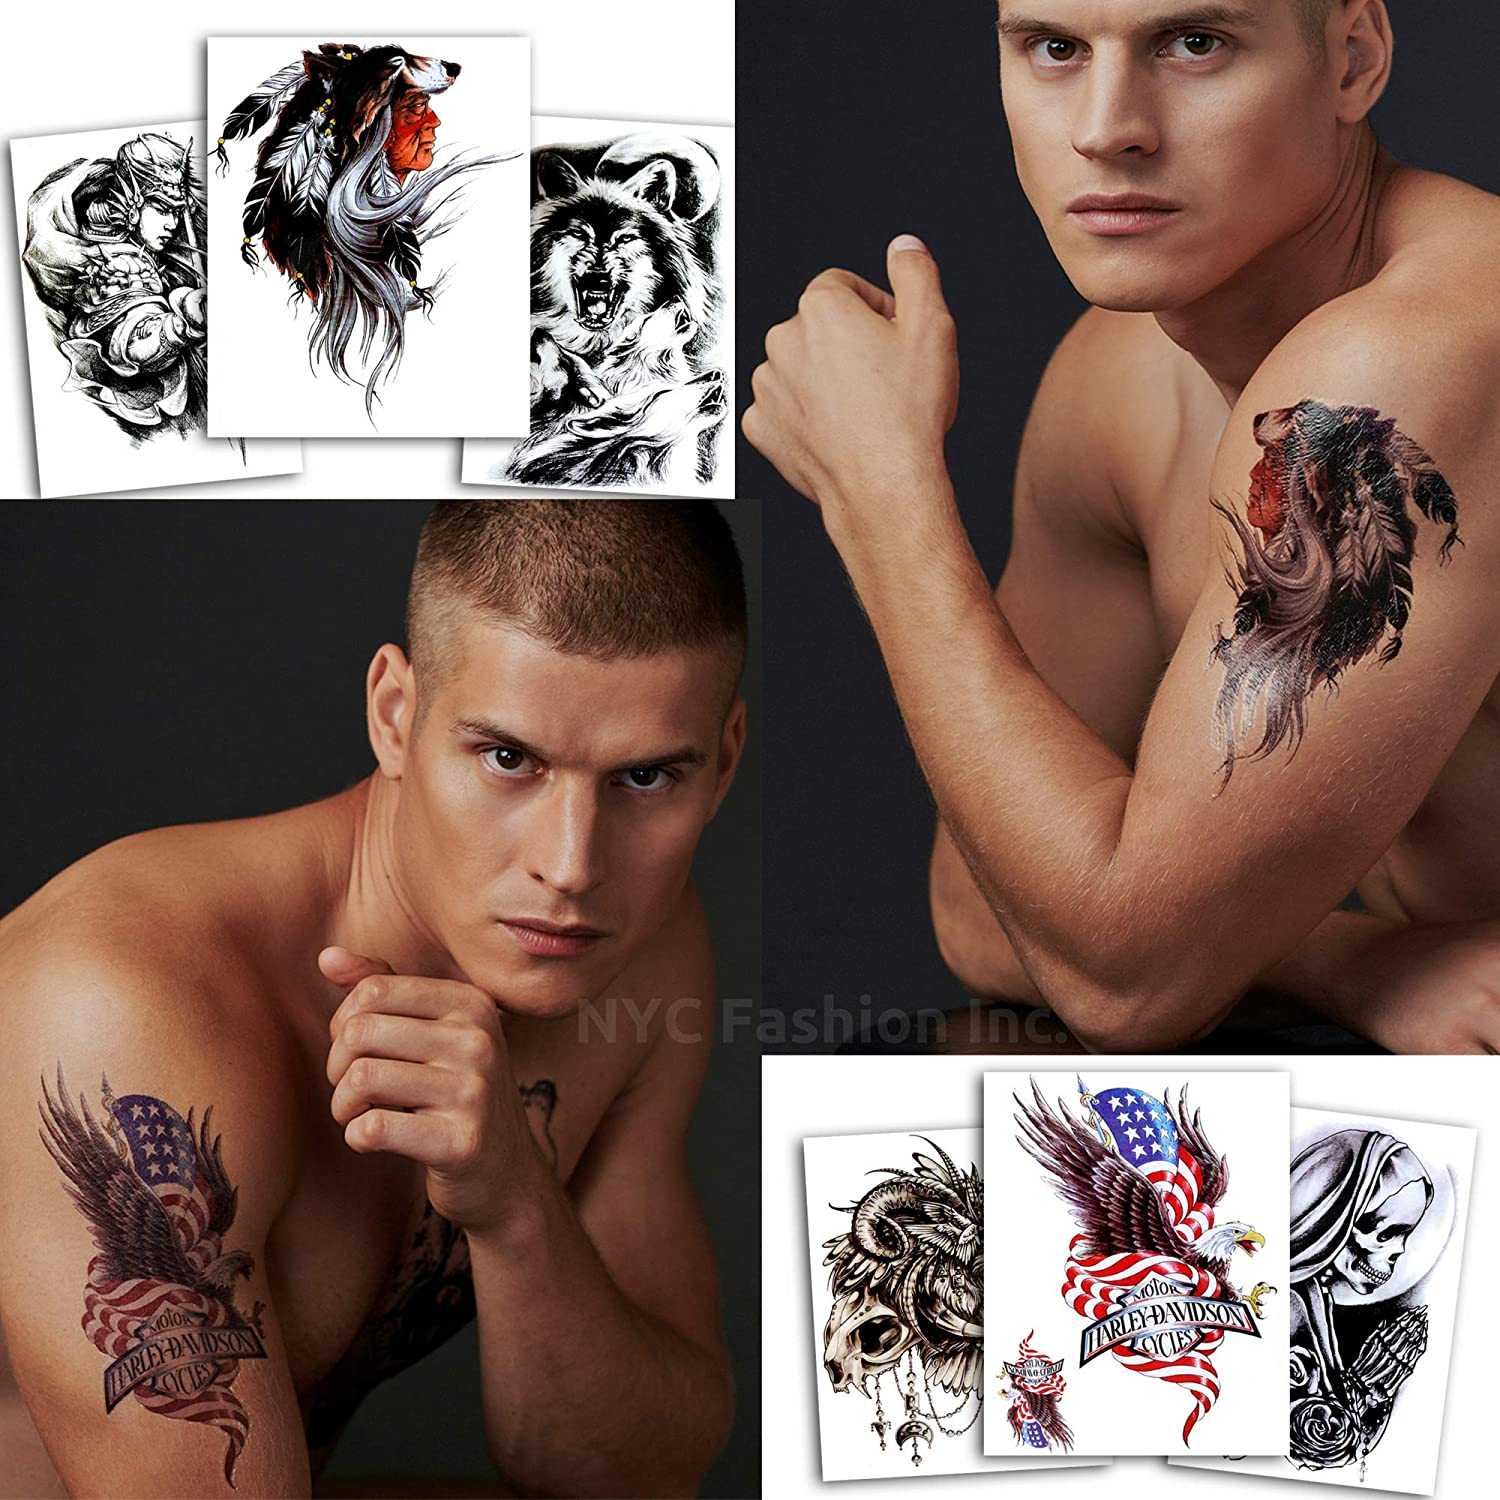 36c56ca94 Amazon.com : 6 Cool Temporary Tattoos - Large Size - Harley, Biker, Indian  Chief, Warrior, Wolf and Skull Tattoos - For Men, Adults and Teens for Arms  Legs ...